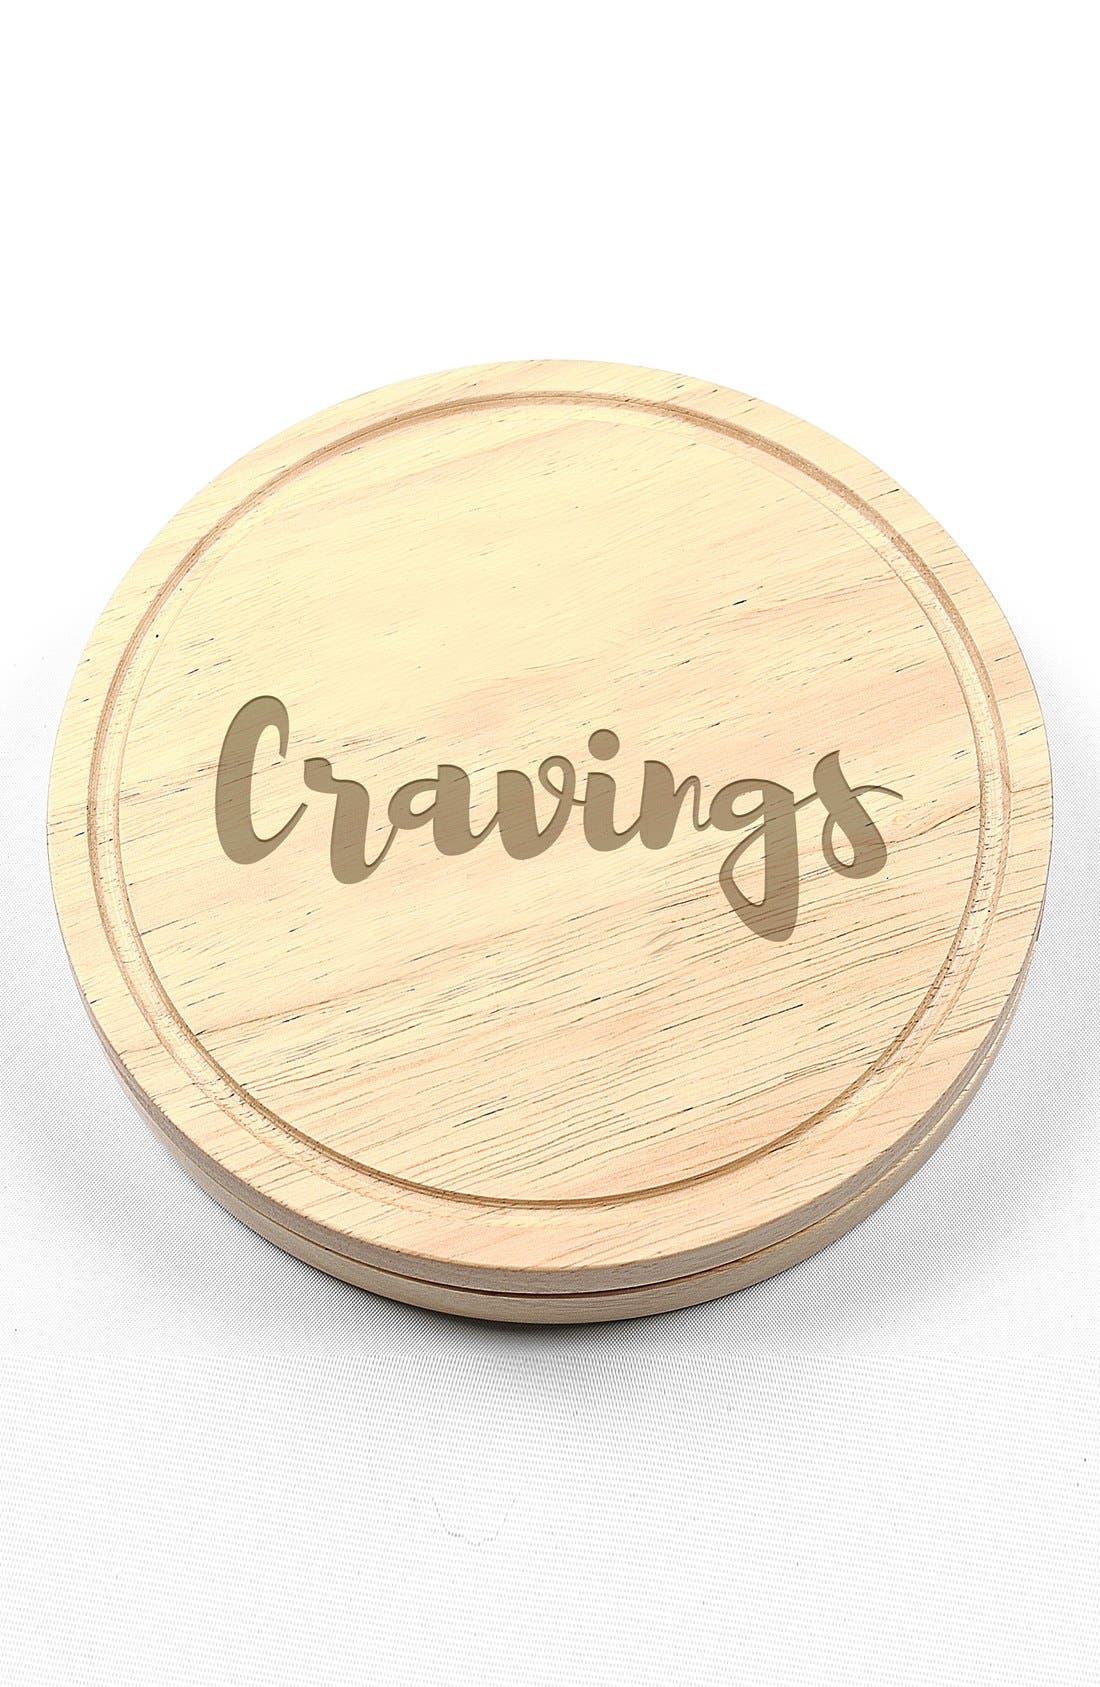 'Cravings' 5-Piece Cheese Board & Utensil Set,                             Alternate thumbnail 3, color,                             200